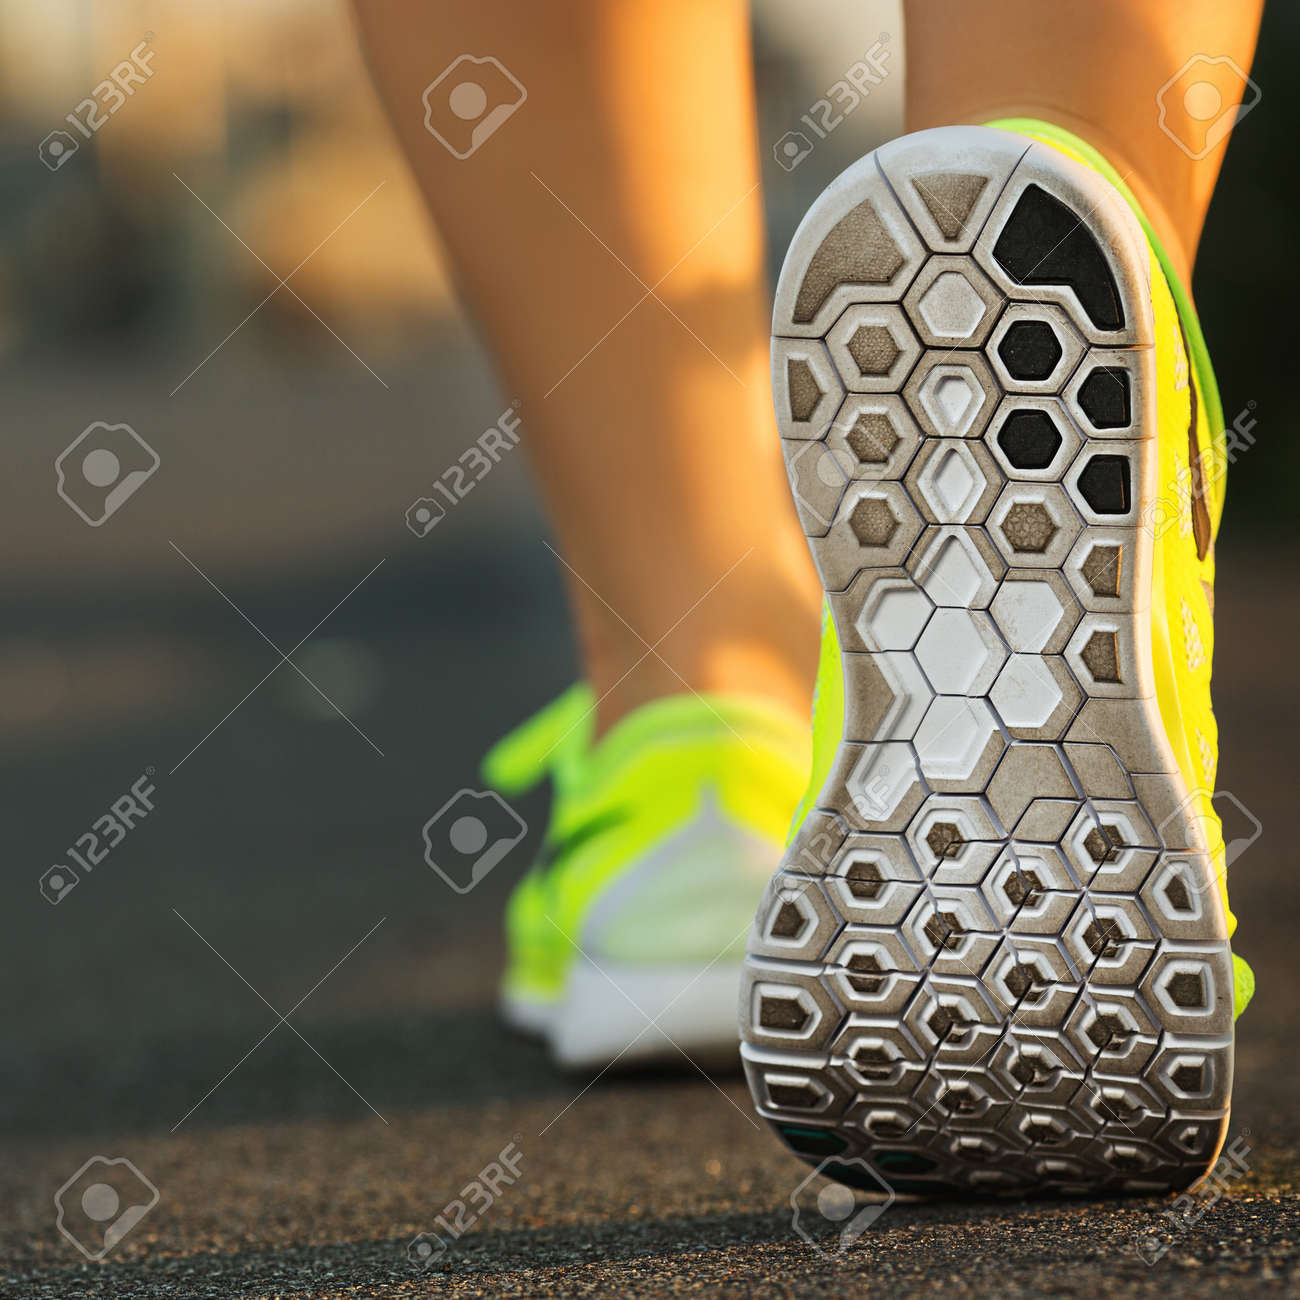 Runner woman feet running on road closeup on shoe. Female fitness model sunrise jog workout. Sports healthy lifestyle concept. - 31878070